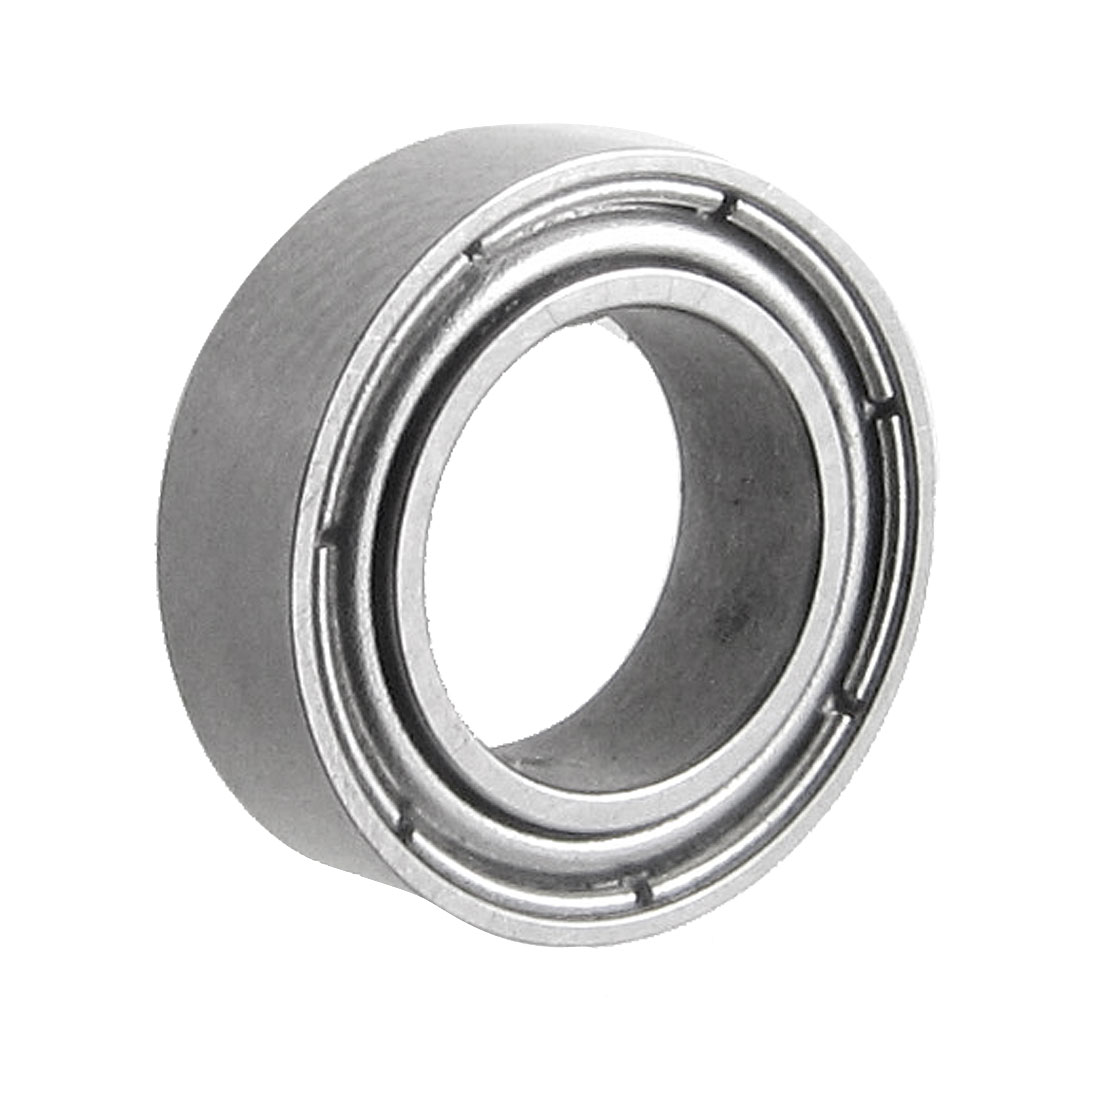 6mm x 10mm x 3mm Metal Sealed Deep Groove Radial Ball Bearing